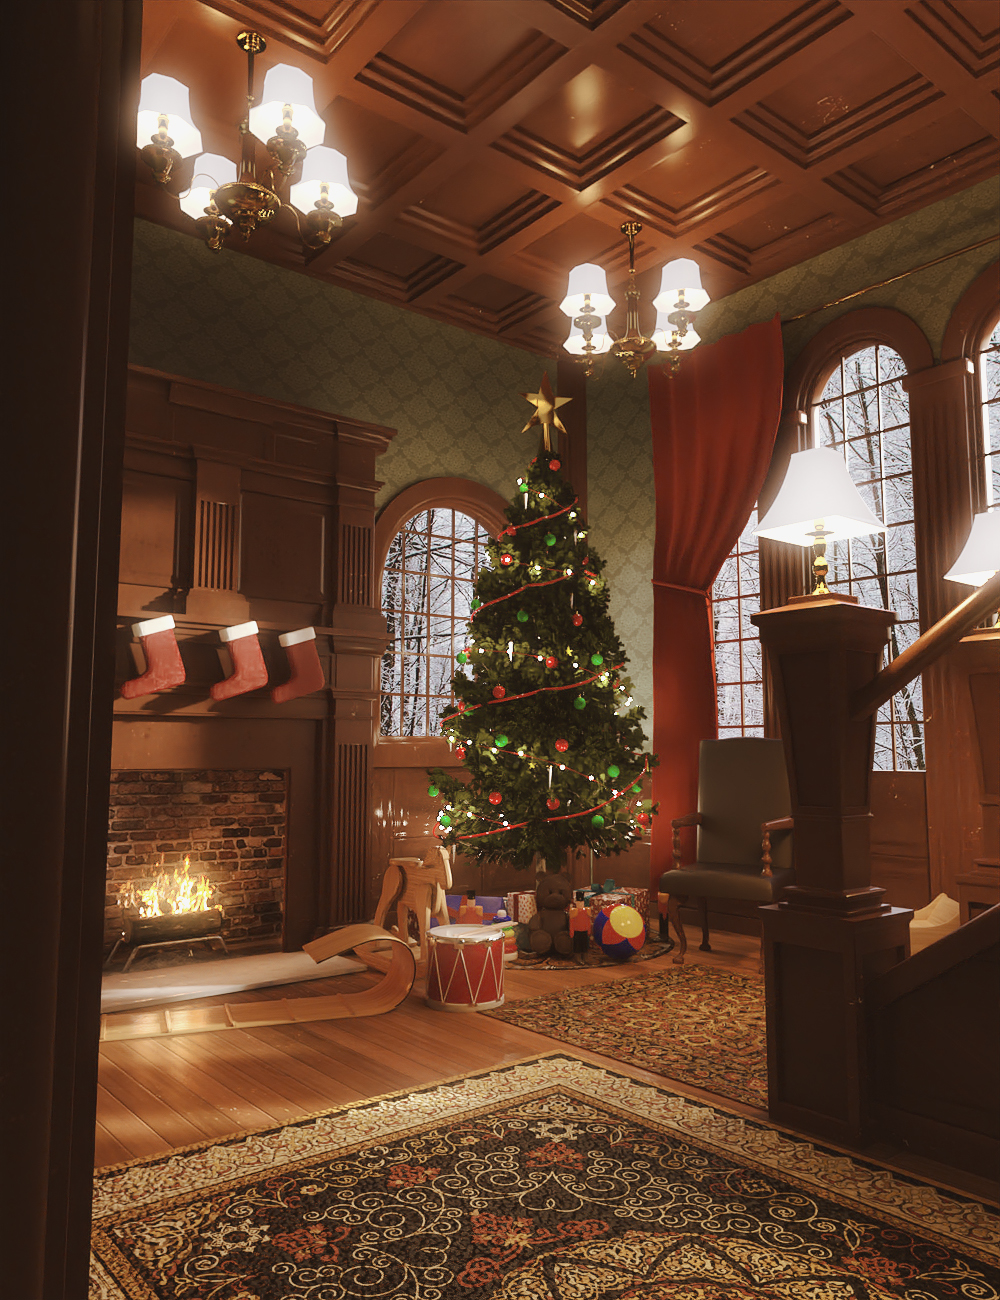 Christmas Room by: PerspectX, 3D Models by Daz 3D